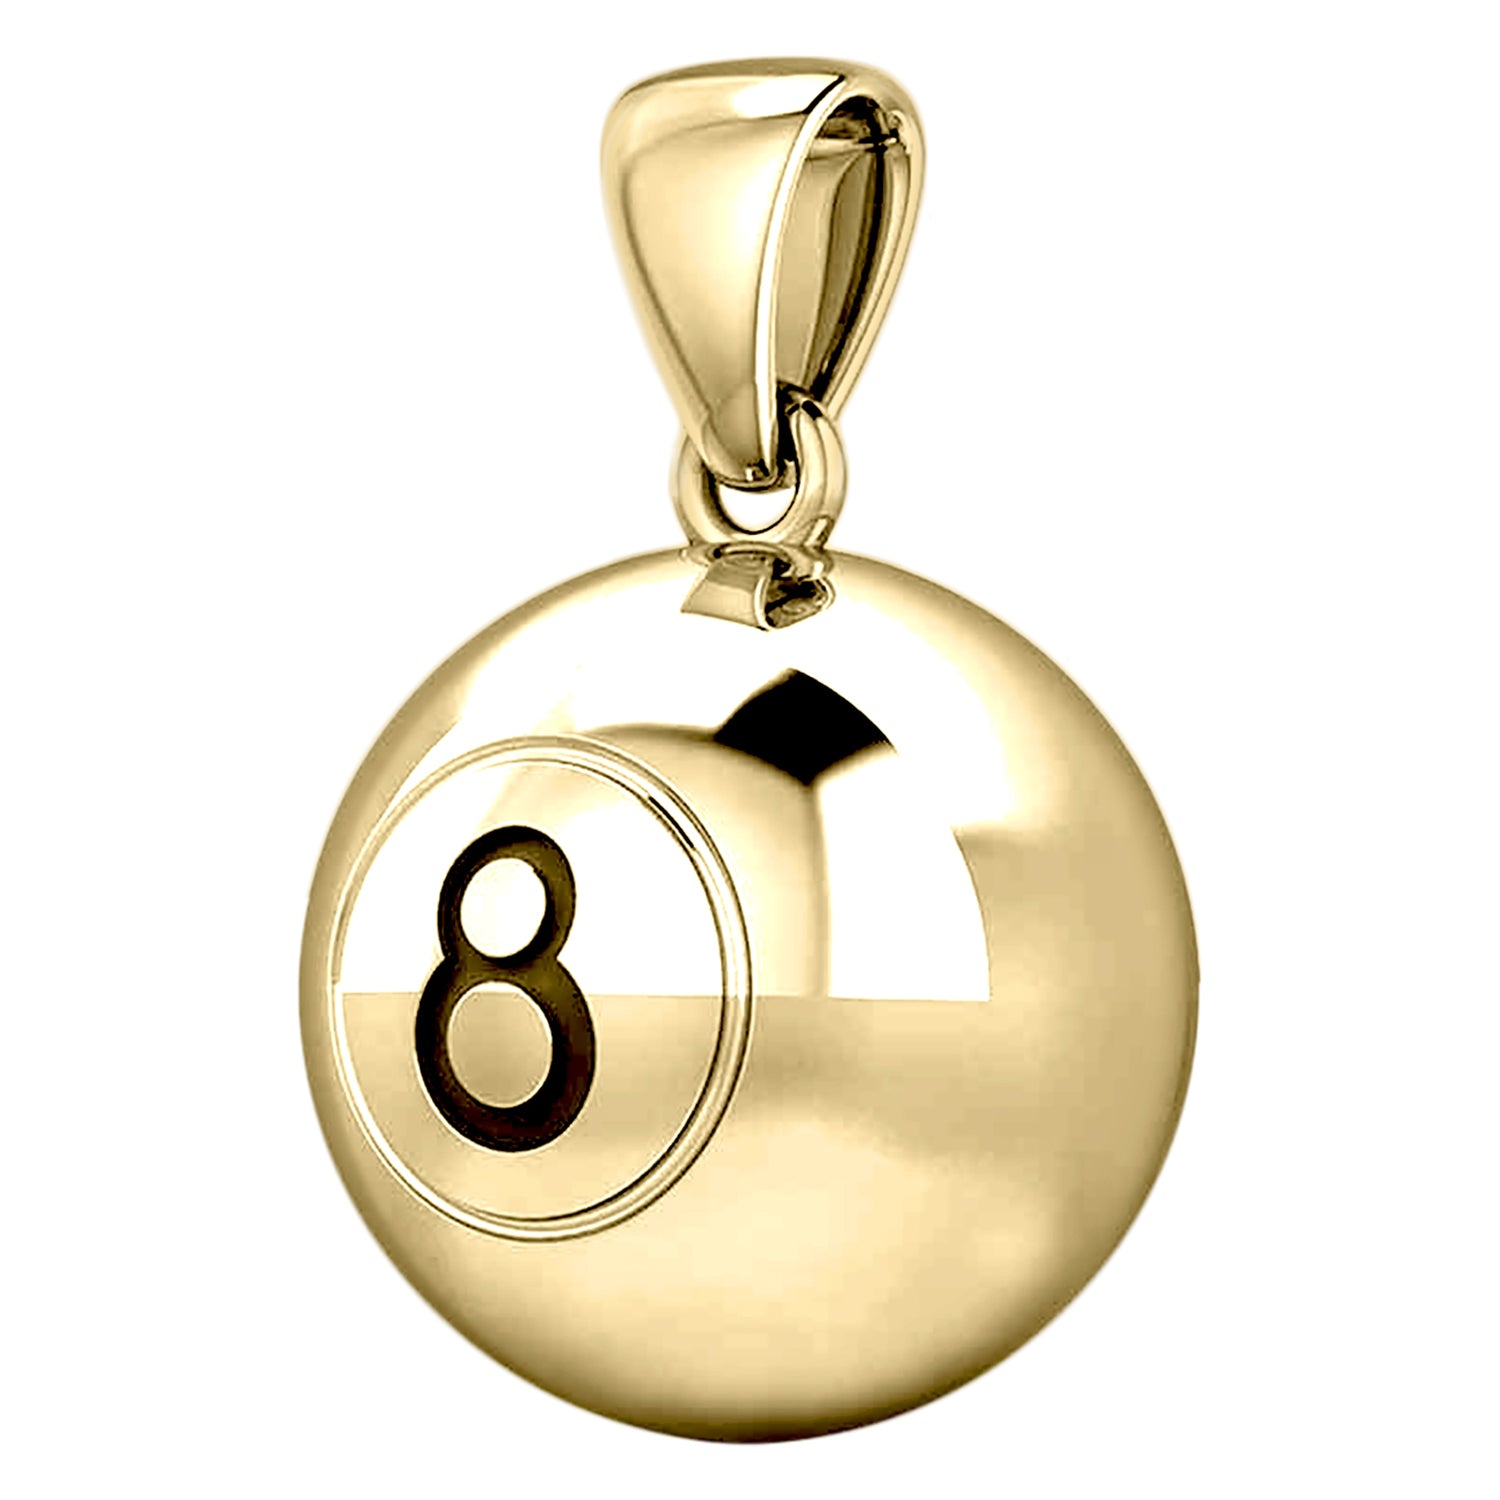 Large 10K or 14K Yellow Gold 3D Eight 8 Ball Billiards Pendant Necklace, 18.5mm